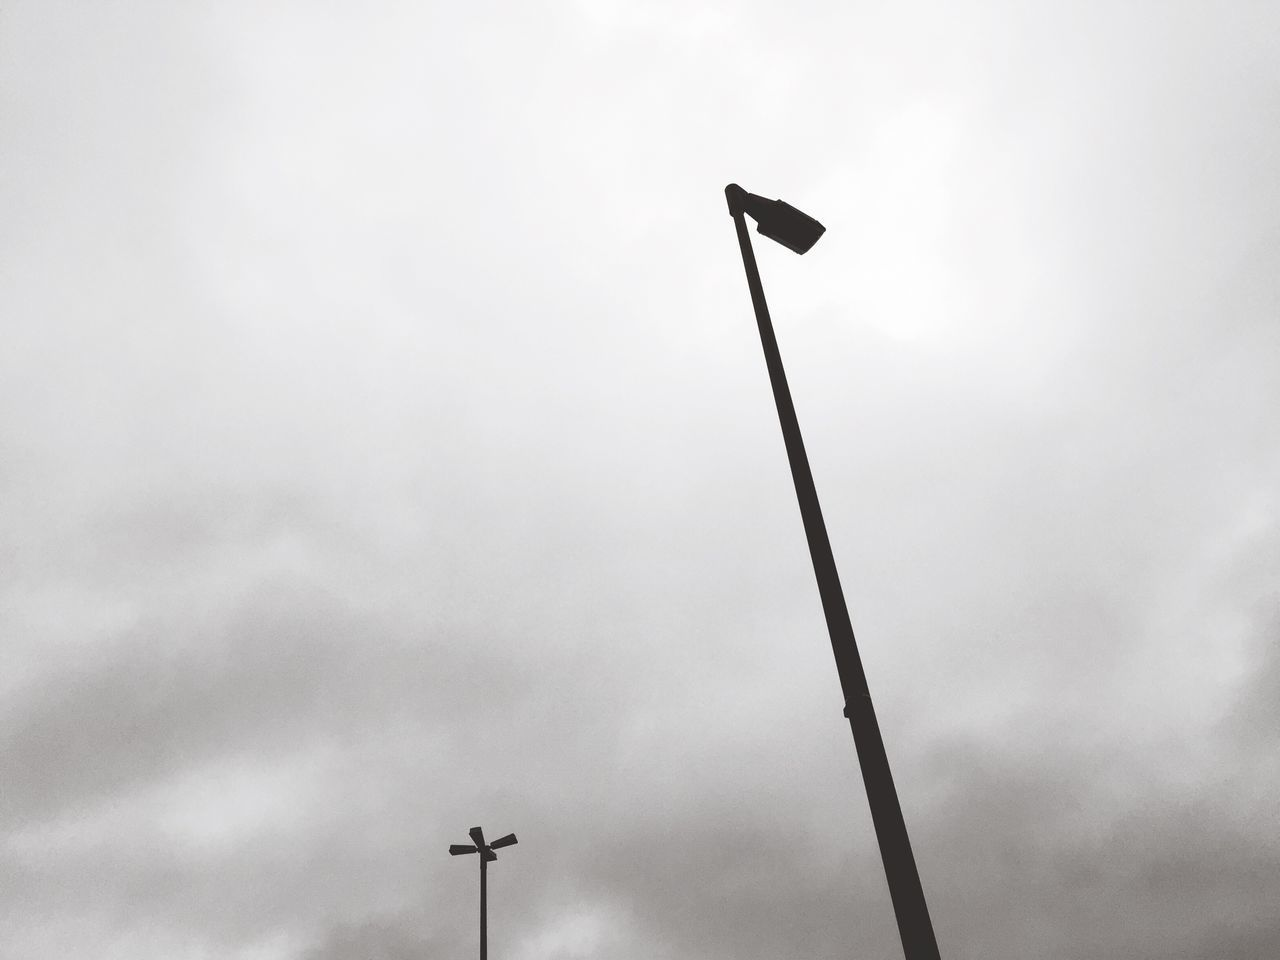 low angle view, street light, sky, floodlight, outdoors, no people, cloud - sky, day, technology